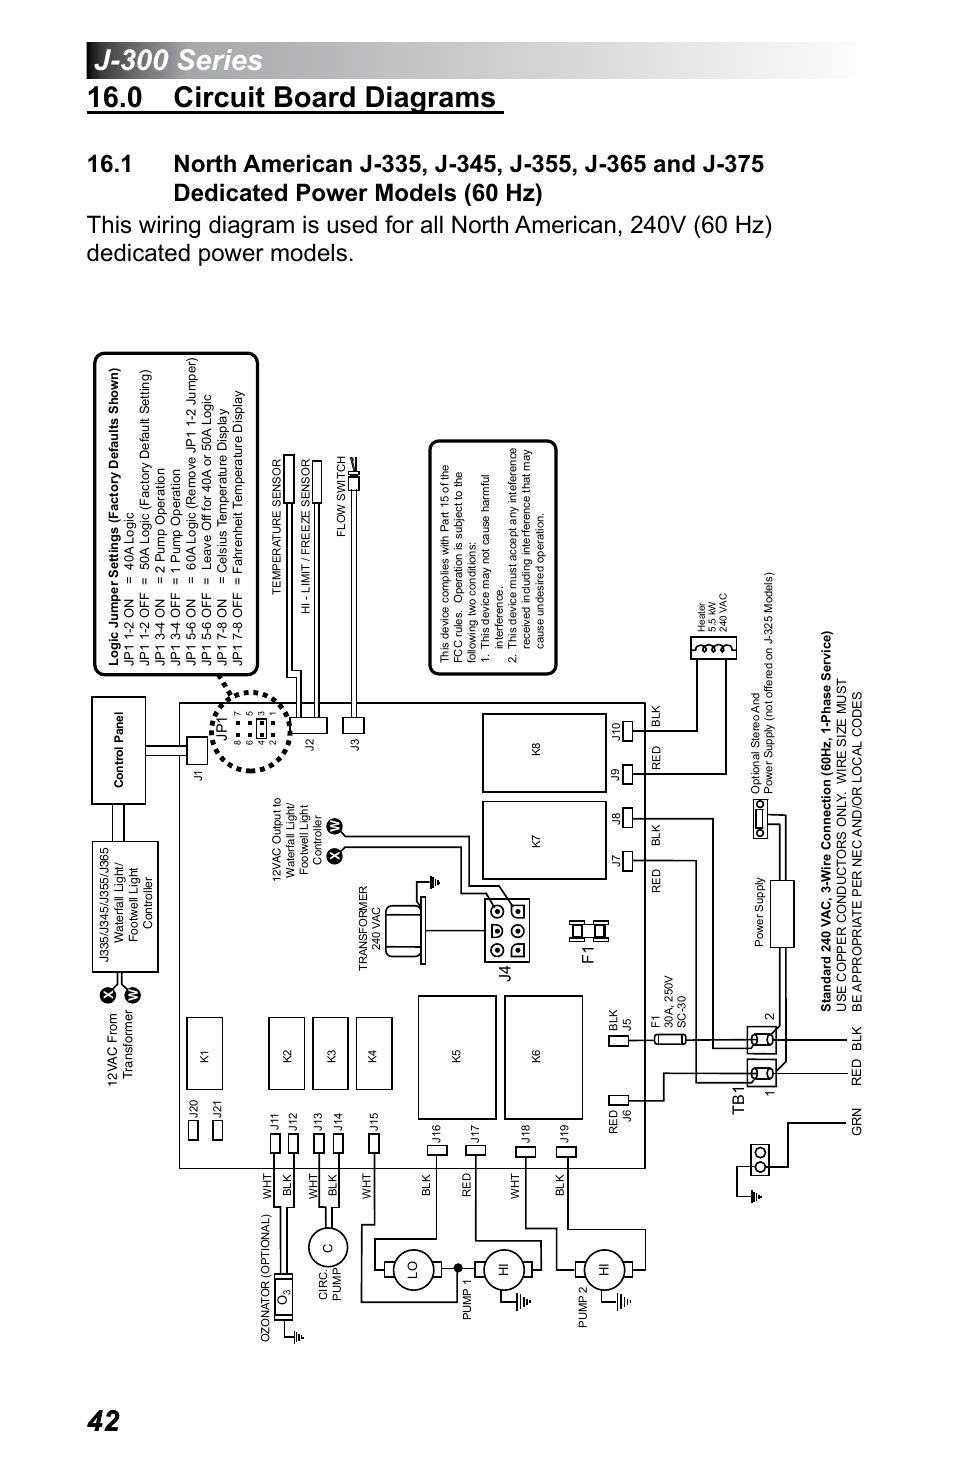 jacuzzi j 375 page46 0 circuit board diagrams, dedicated power models (60 hz) jacuzzi jacuzzi j 345 wiring diagram at alyssarenee.co